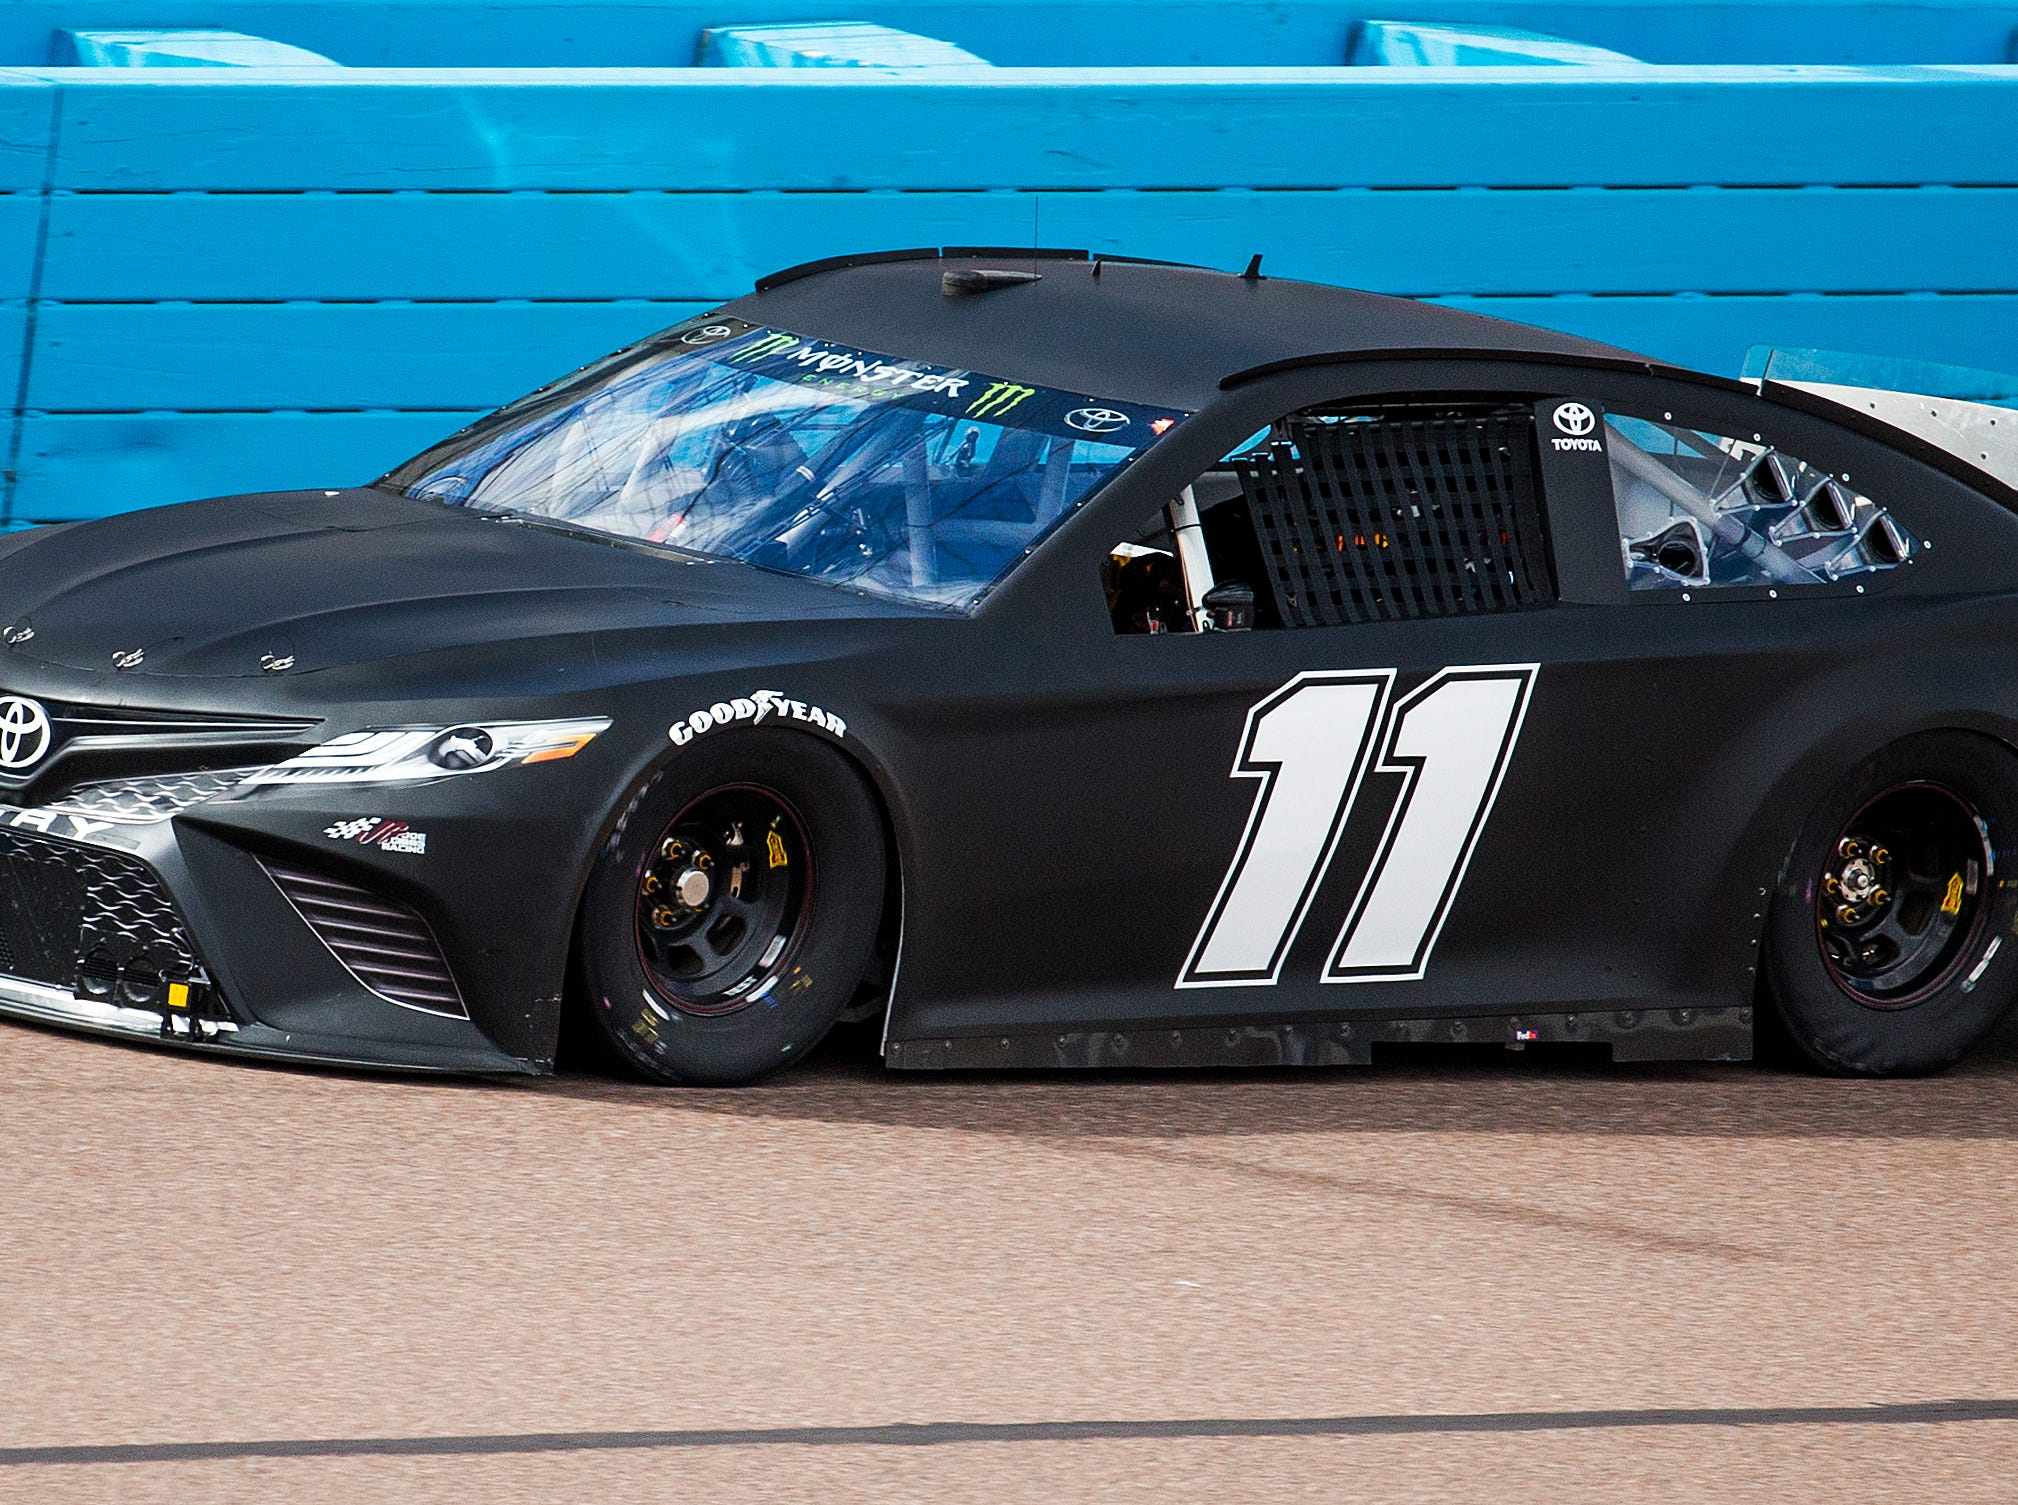 Denny Hamlin tests his tires on the track at ISM Raceway in Phoenix . Final touches are being made in the massive renovation of the former Phoenix International Raceway, Wednesday, October 3, 2018.